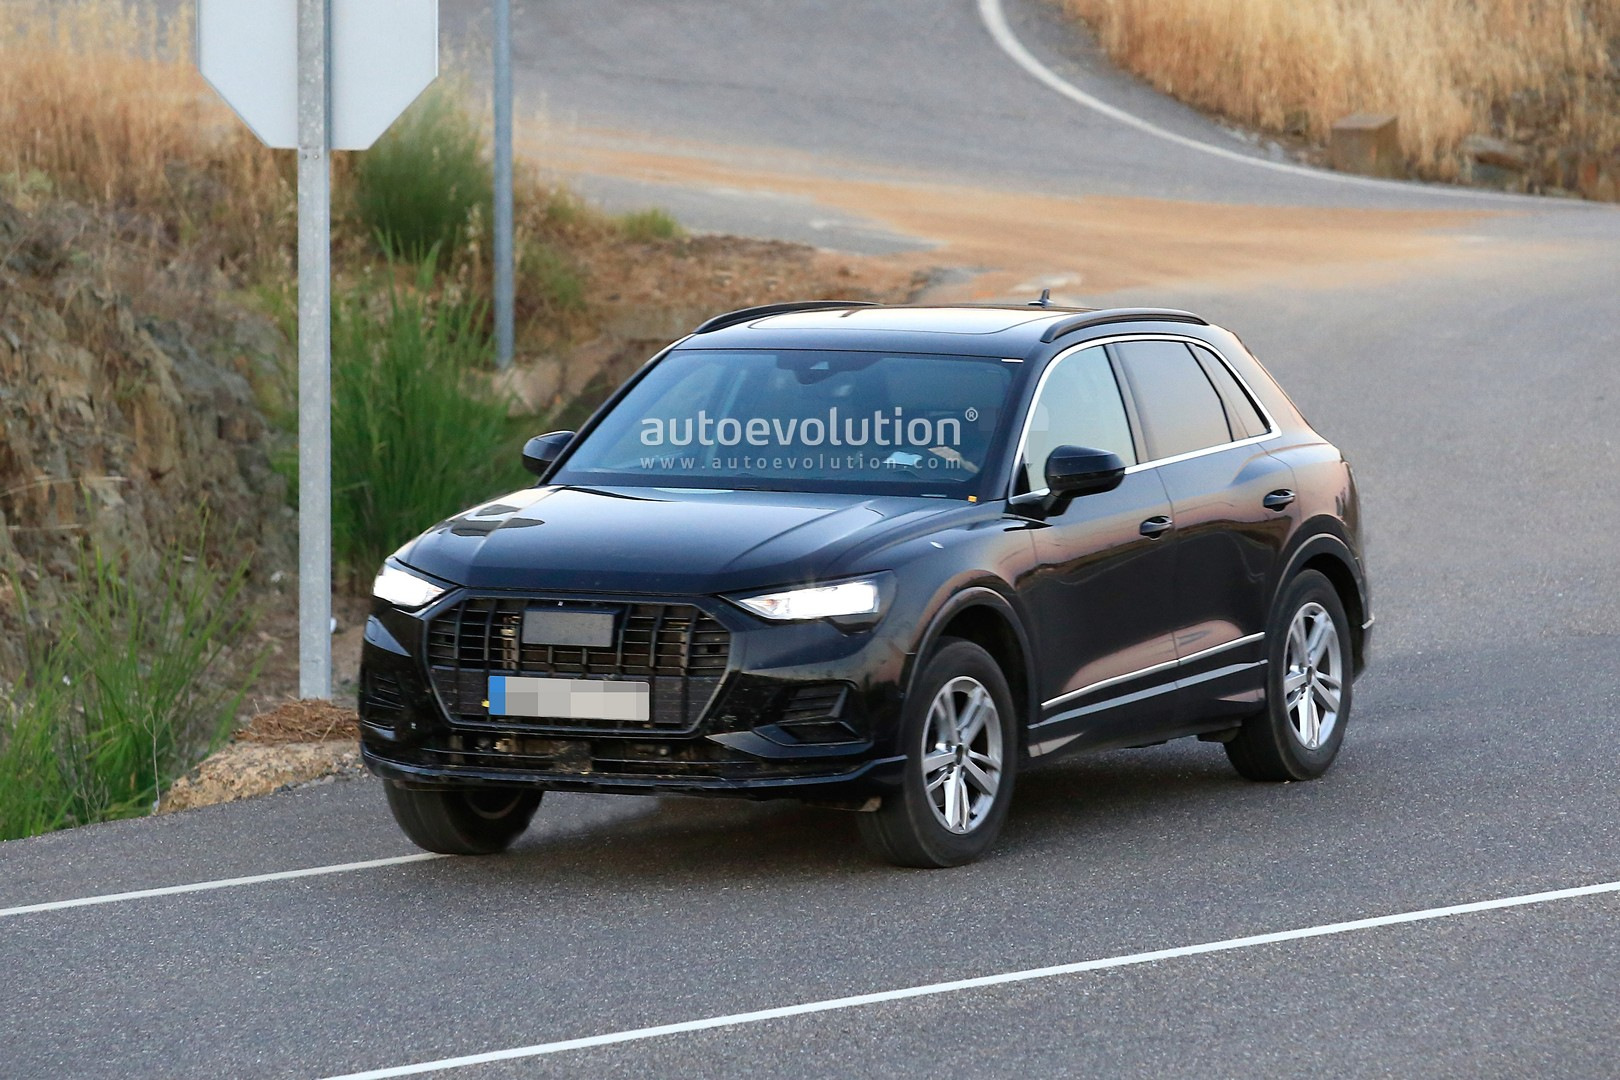 spyshots 2019 audi q3 caught undisguised looks like a. Black Bedroom Furniture Sets. Home Design Ideas